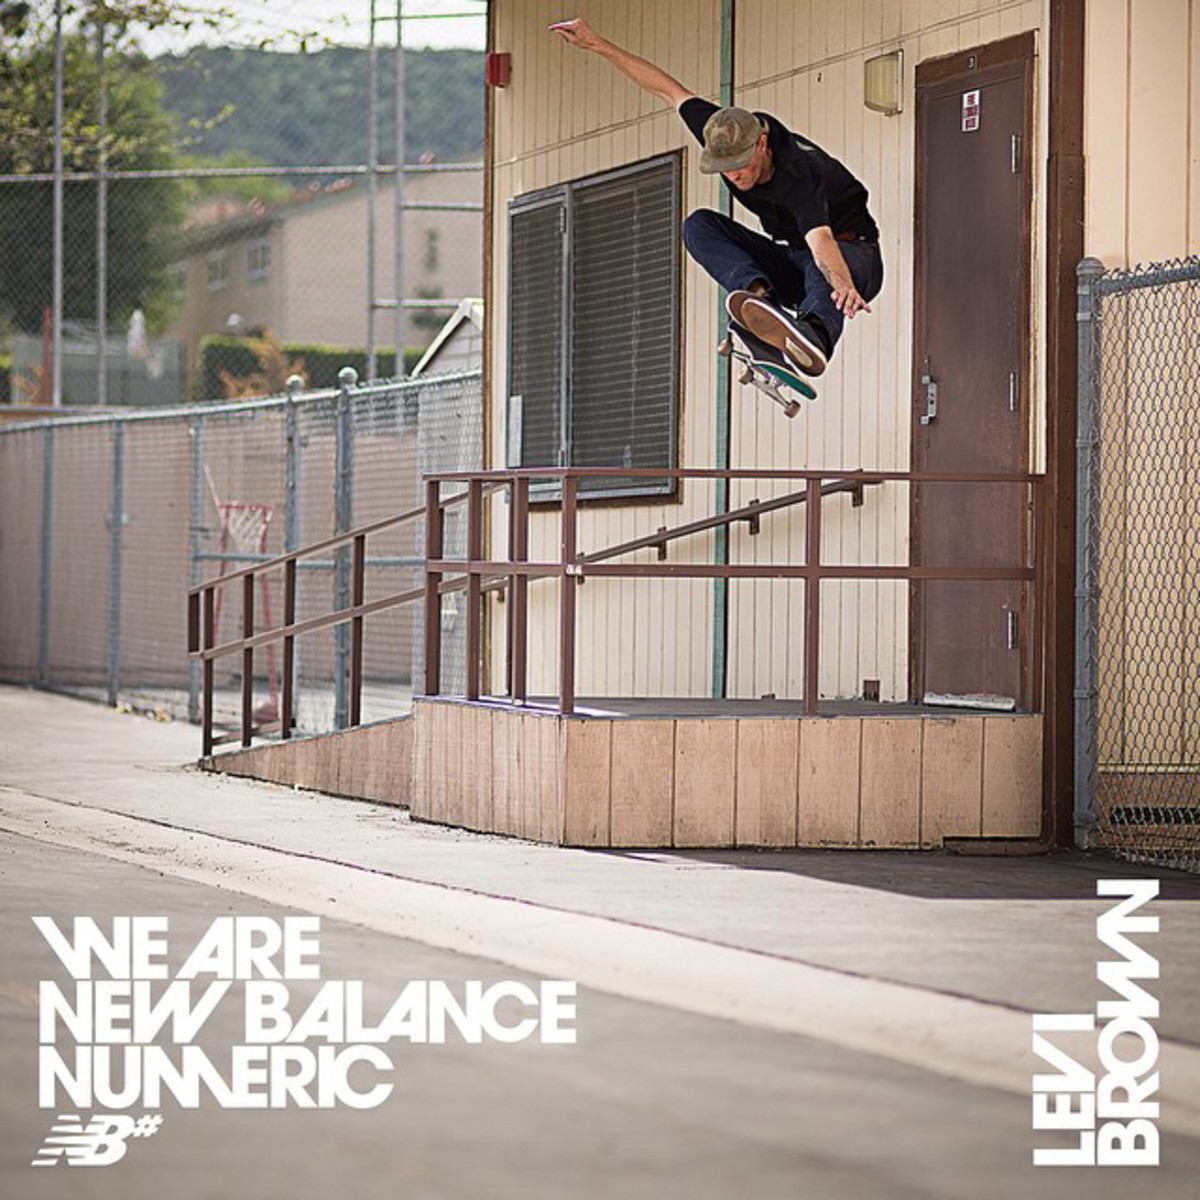 new-balance-numeric-returns-sunland-01